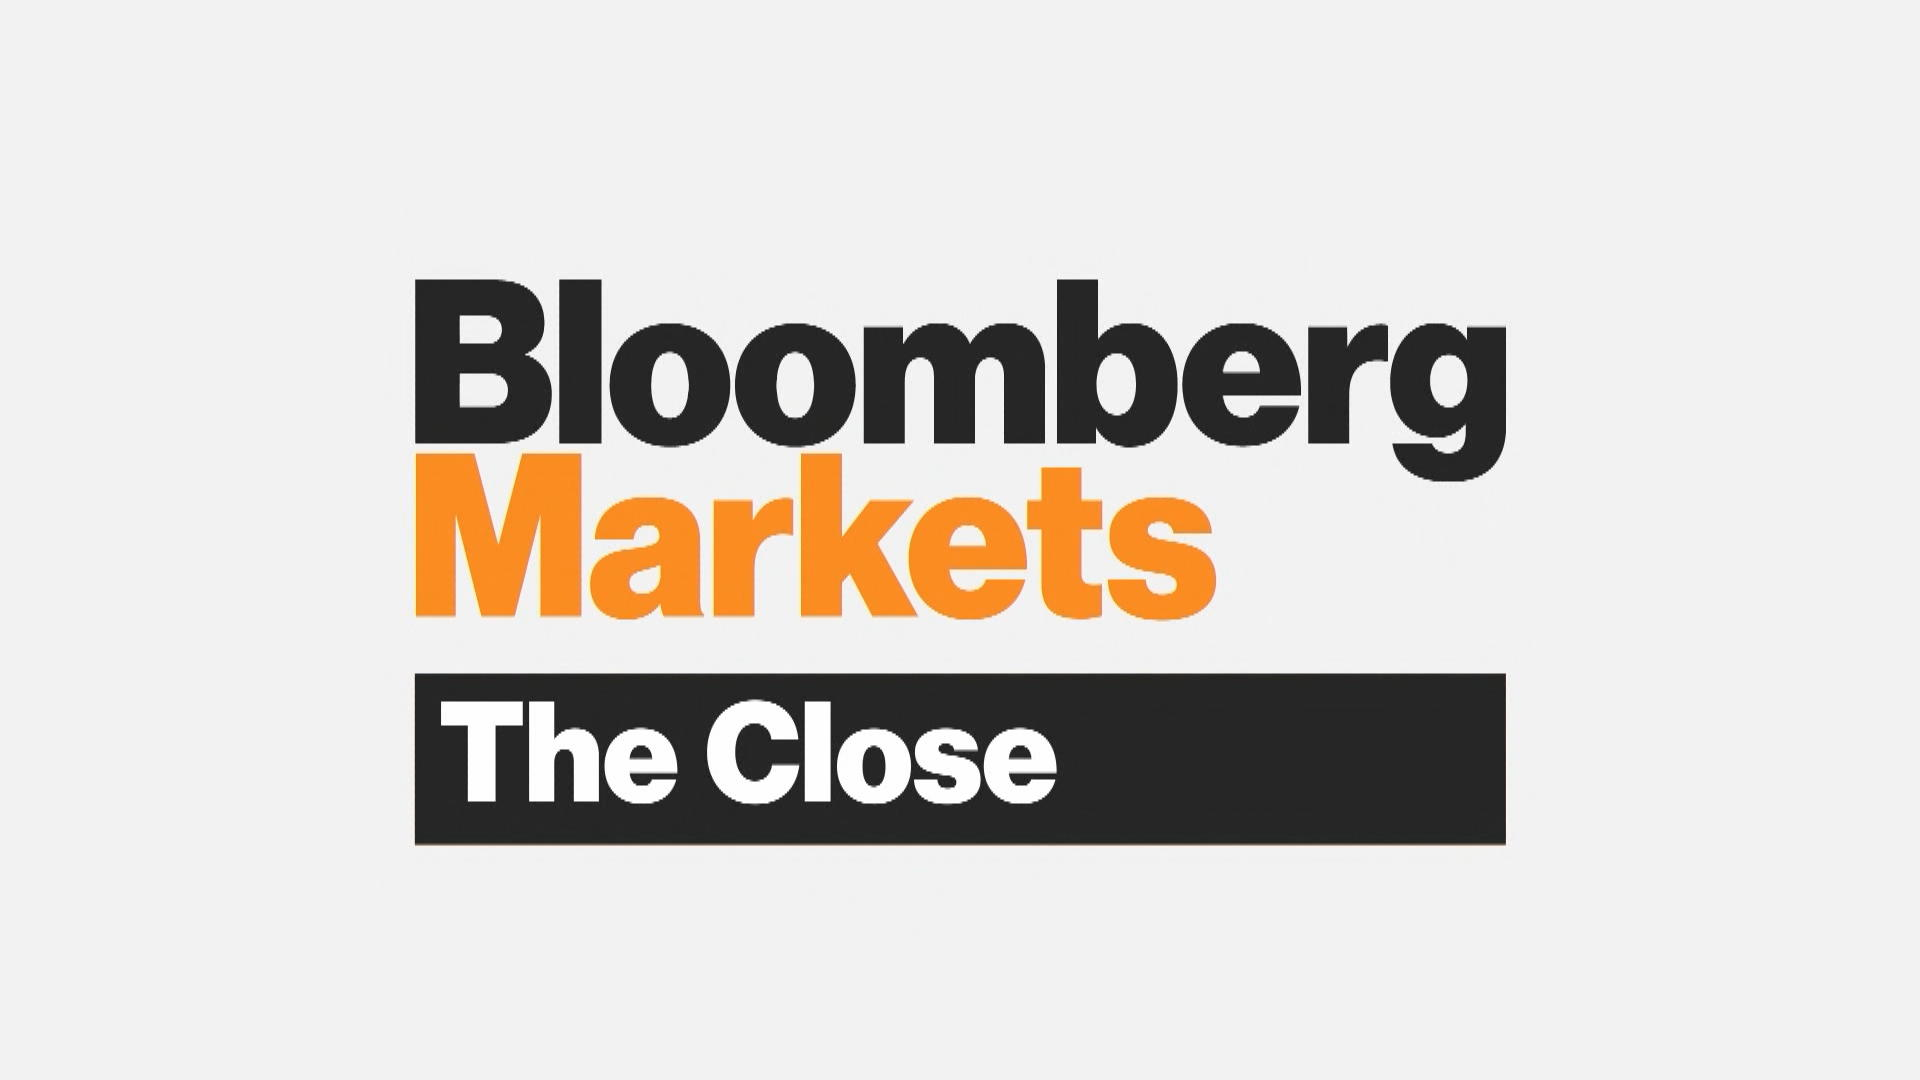 Efforts Underway To Fully Fund Idea >> Bloomberg Markets The Close Full Show 8 19 2019 Bloomberg